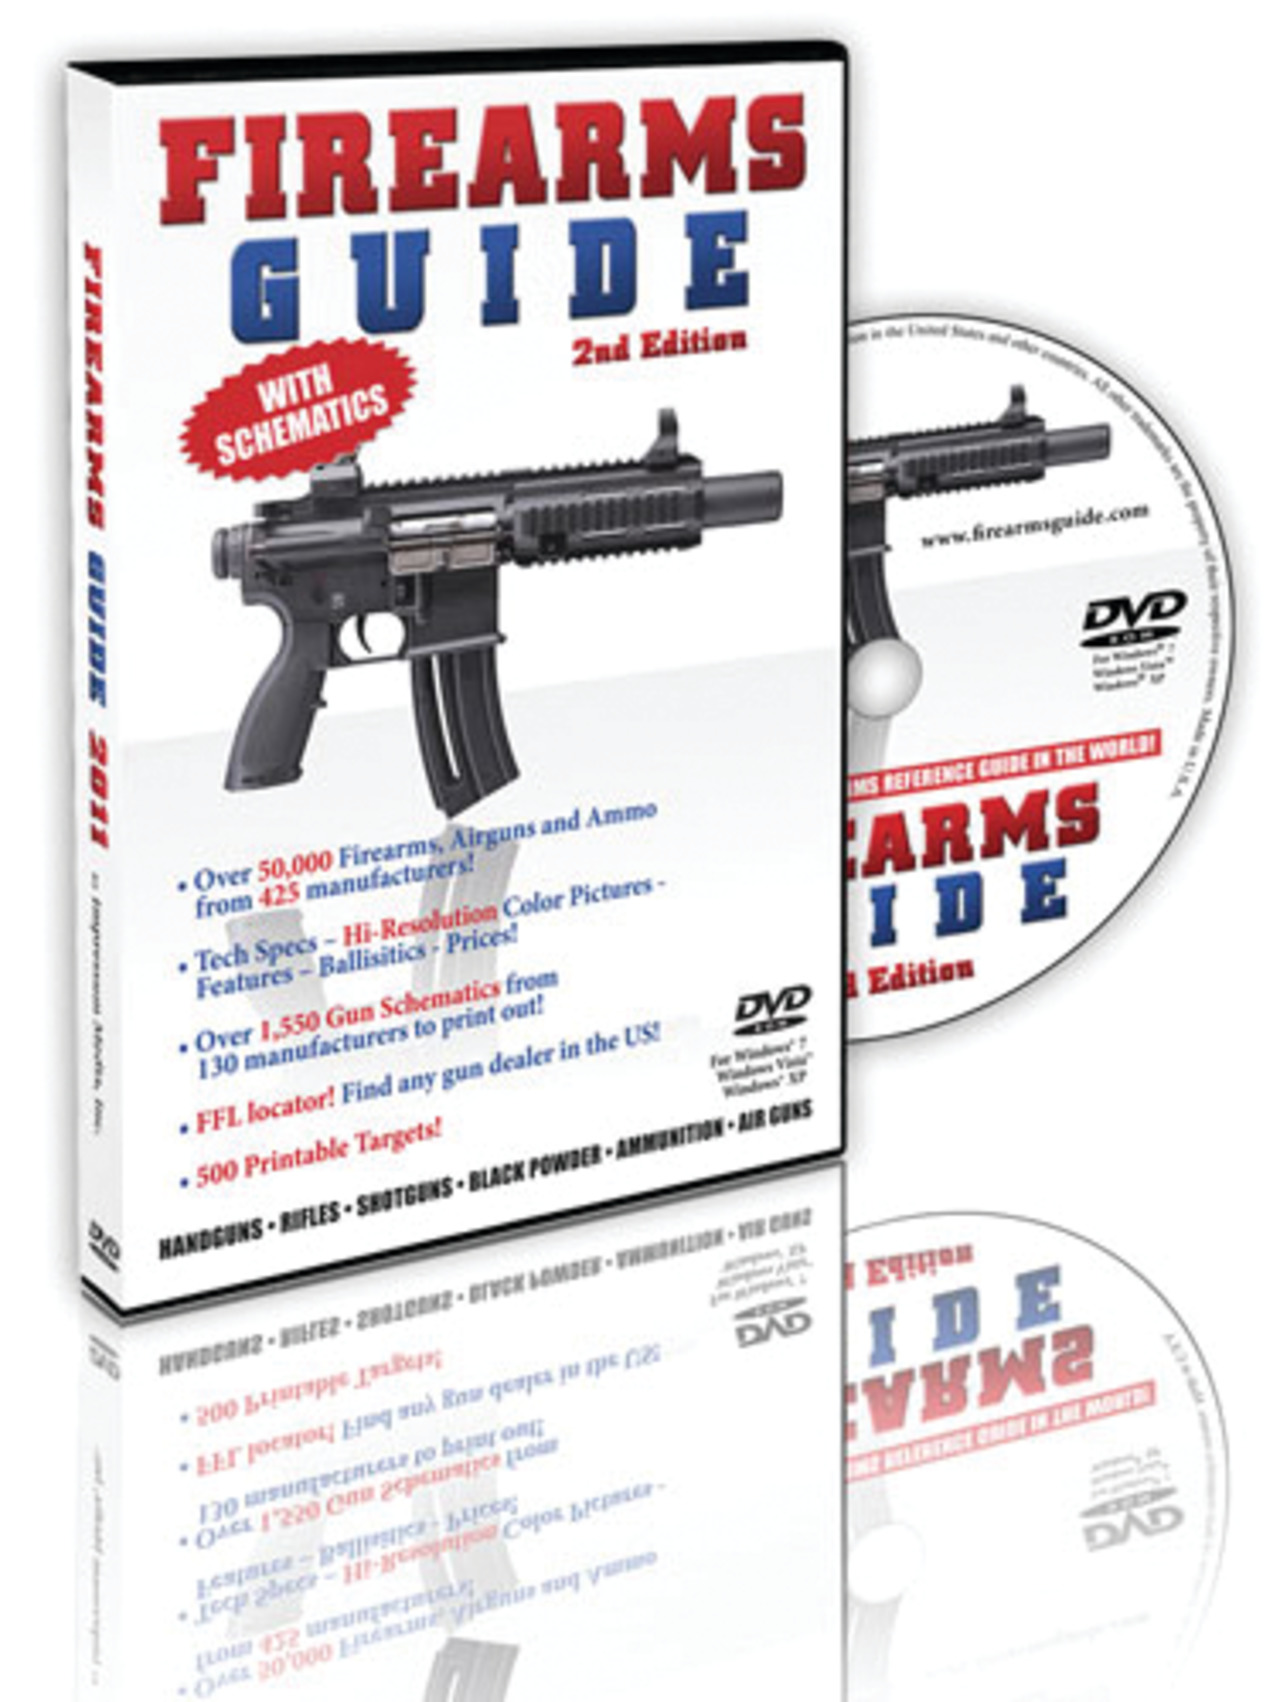 IMPRESSUM MEDIA INC  Firearms Guide, 2nd Edition in Books & Publications